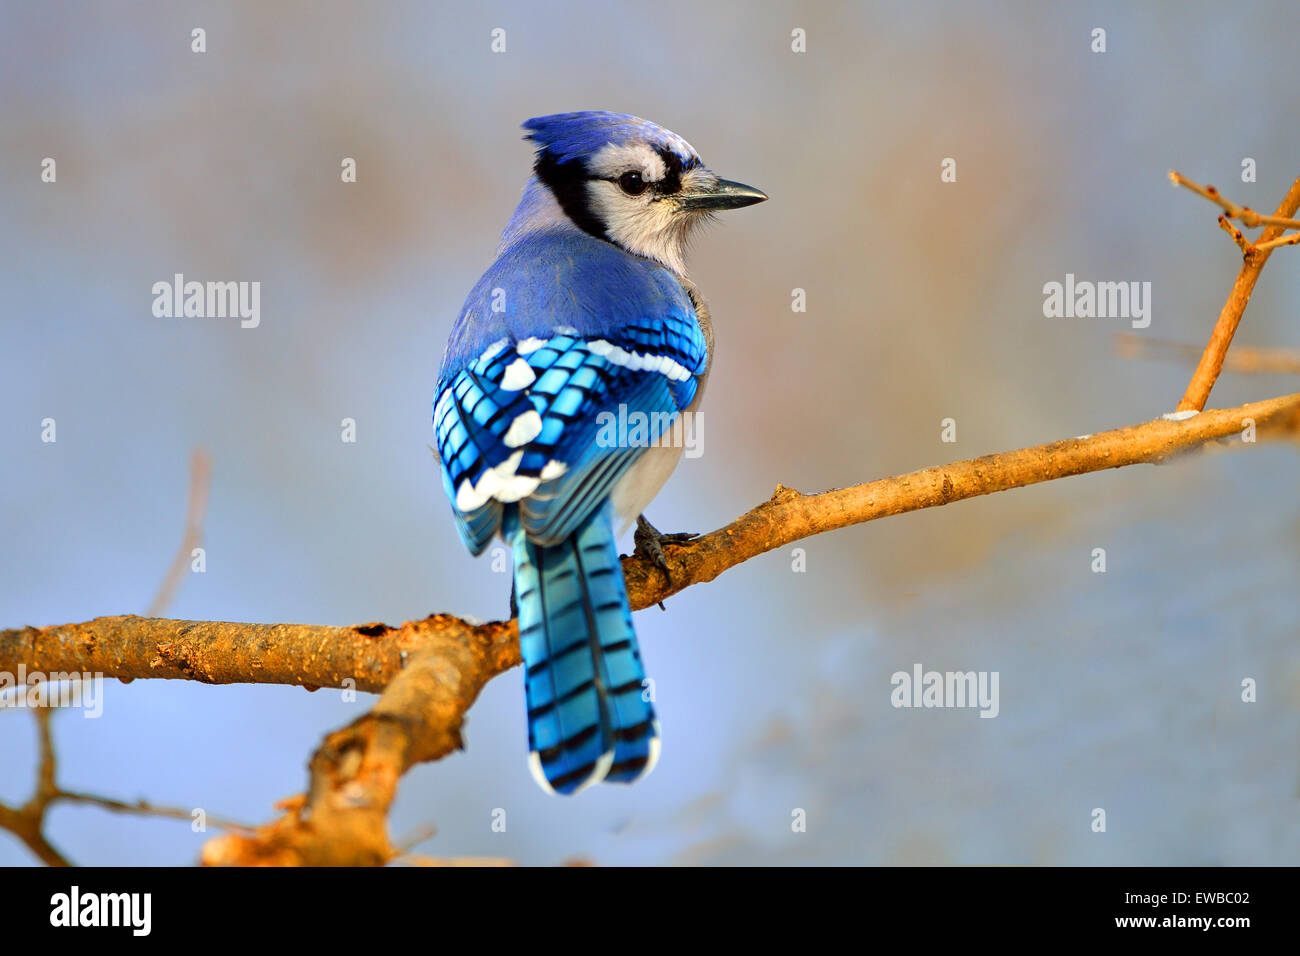 Blue Jay standing on a tree branch - Stock Image